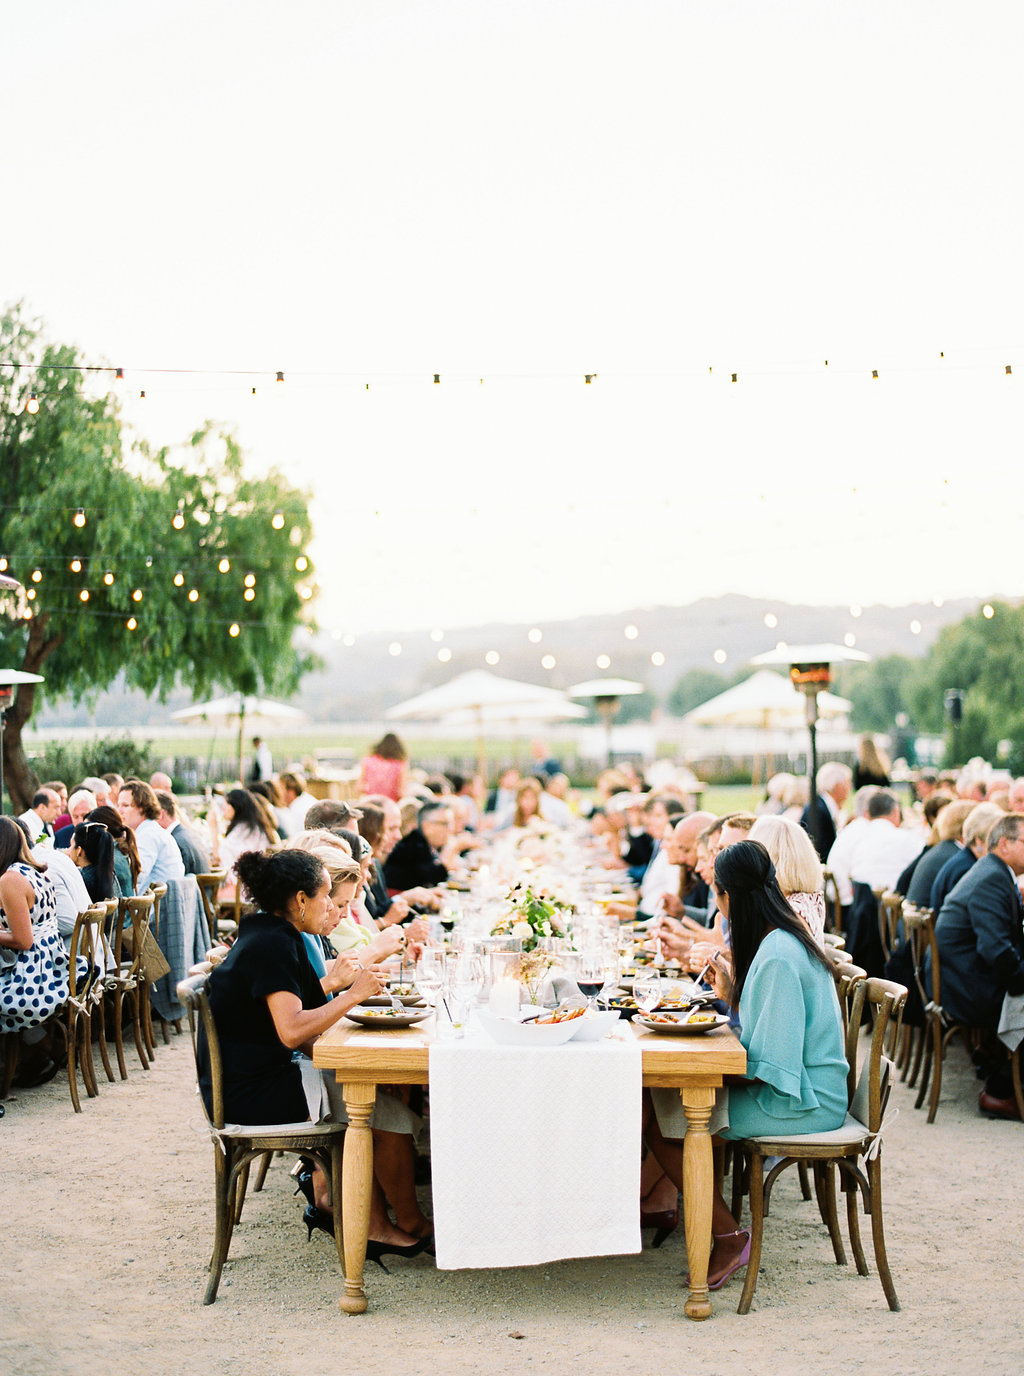 13 Ways to Plan a Summer-Inspired Rehearsal Dinner Menu